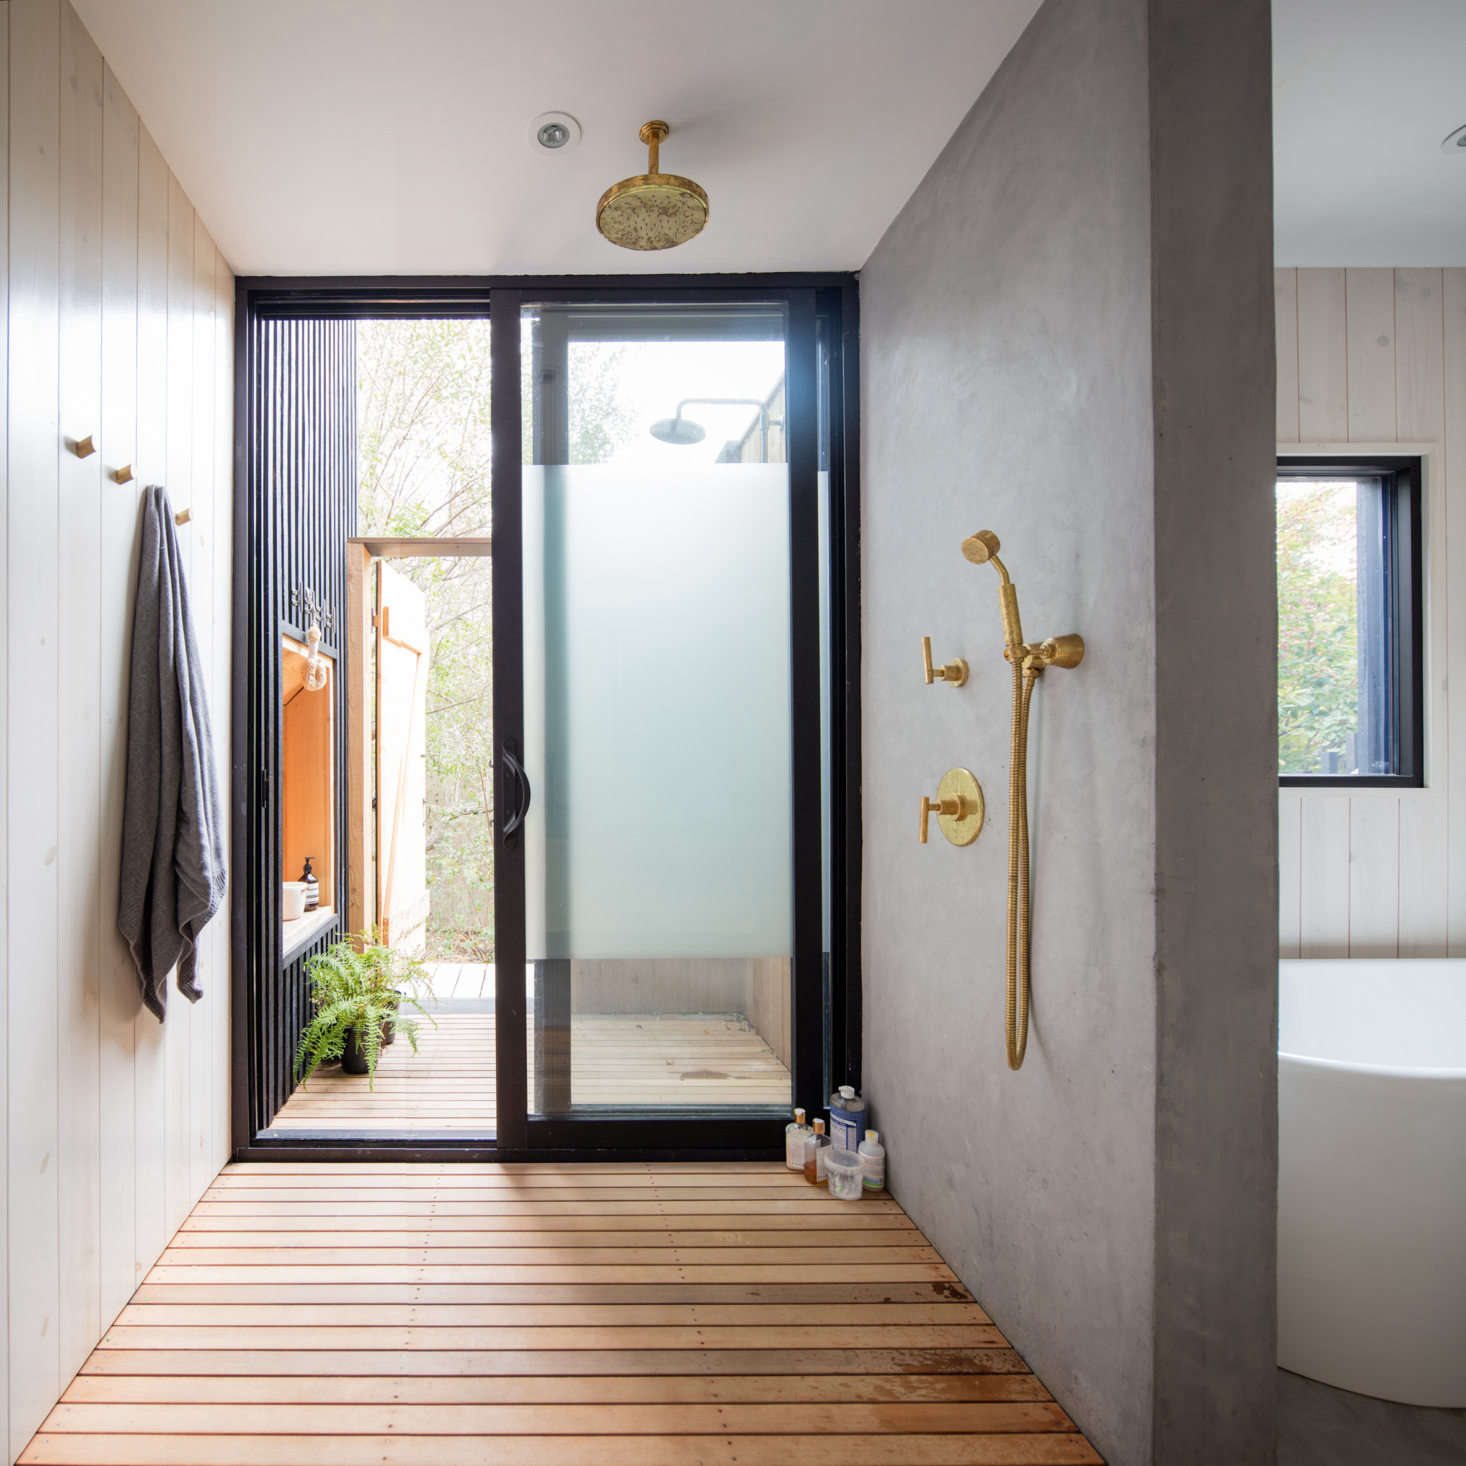 The ground-floor bath serves three bedrooms. It has both an indoor and outdoor shower, divided by anobscured-glass sliding door. The outdoor shower can be accessed from the side yard, so residents can have a post-beach rinse without coming indoors.